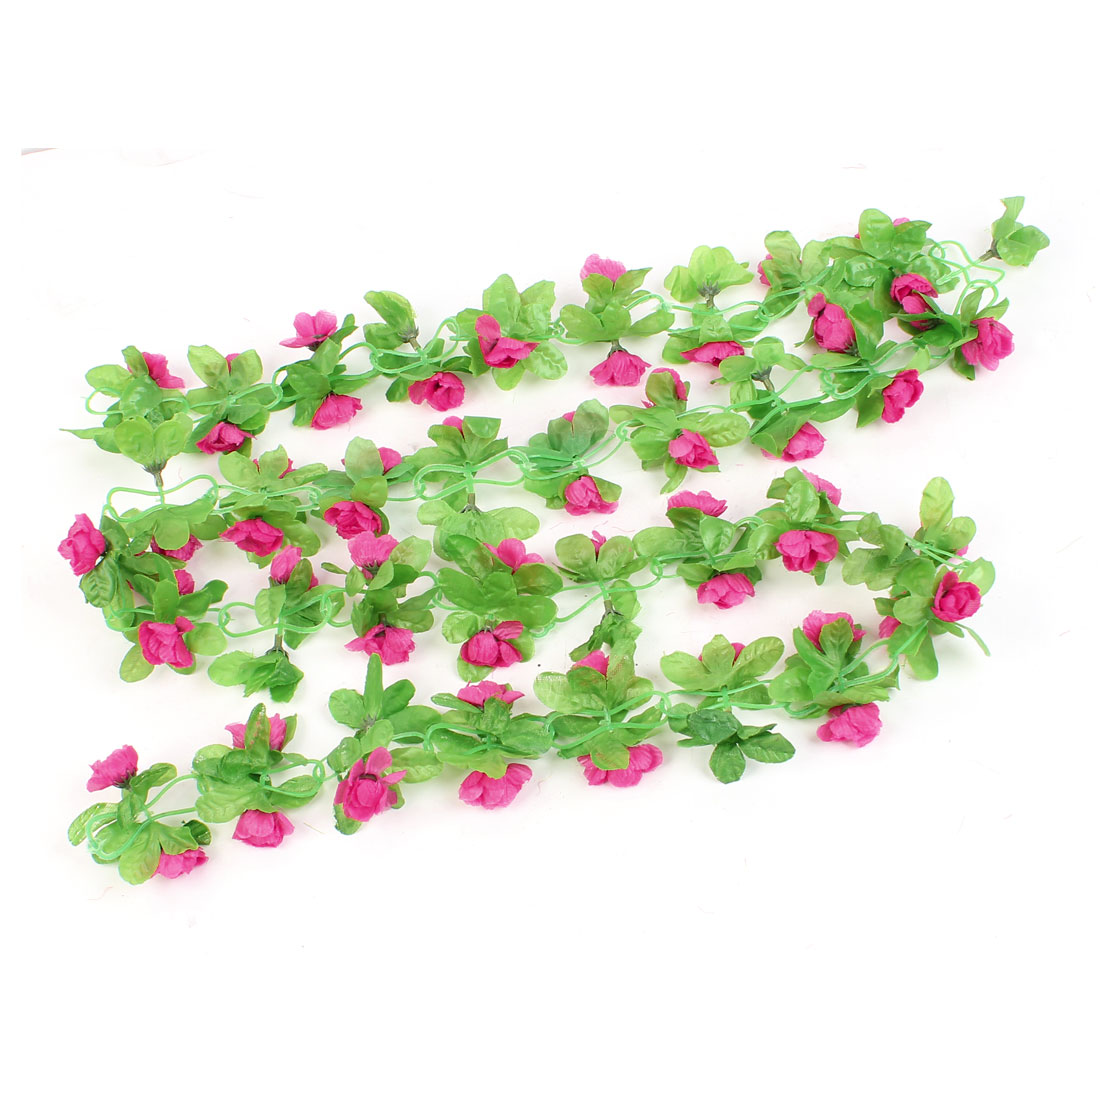 Home Decor 1.8M Long Green Fabric Leaf Fuchsia Lilac Hanging Vine